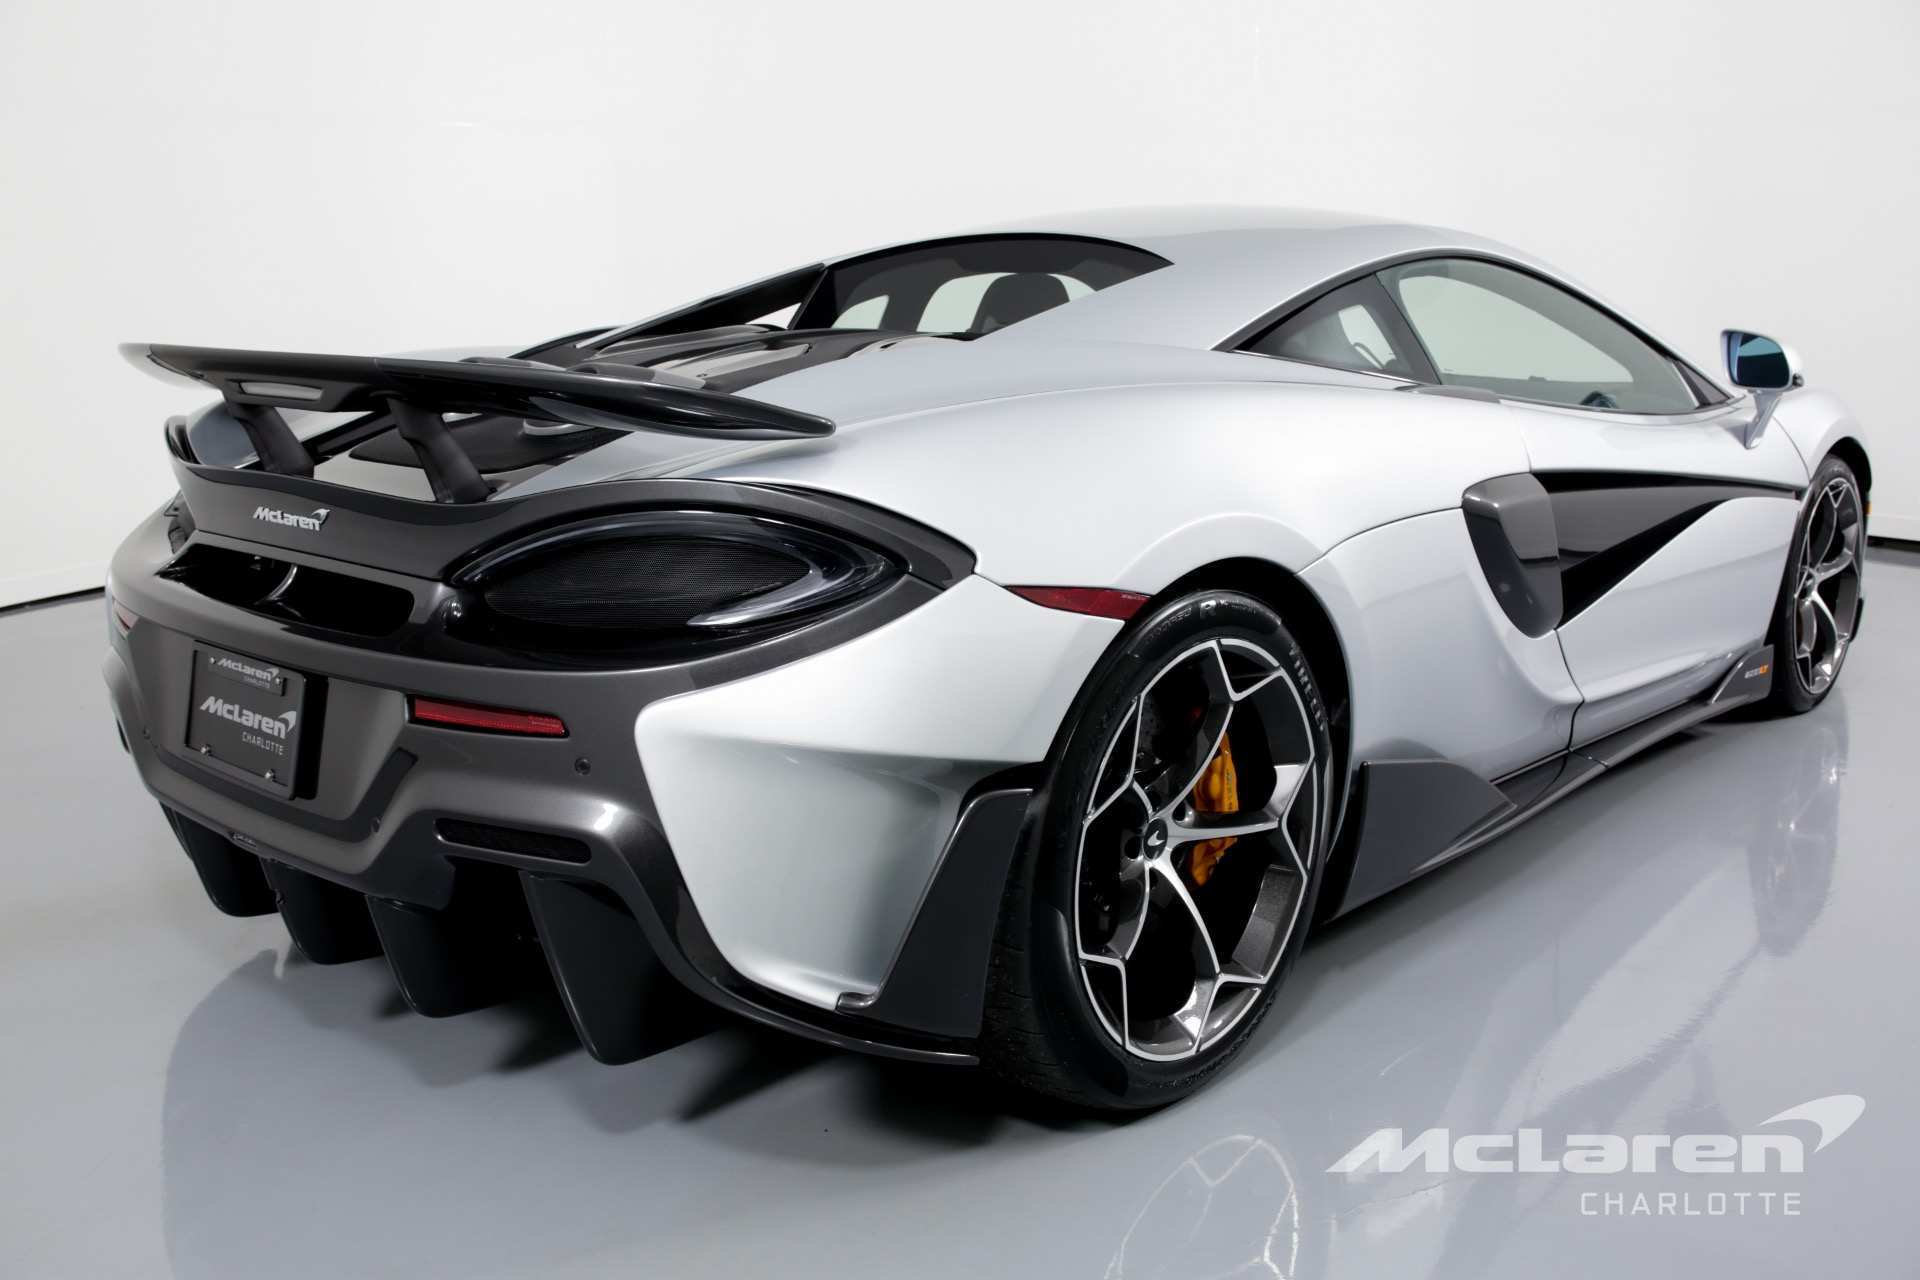 73 New 2019 Mclaren Concept And Review